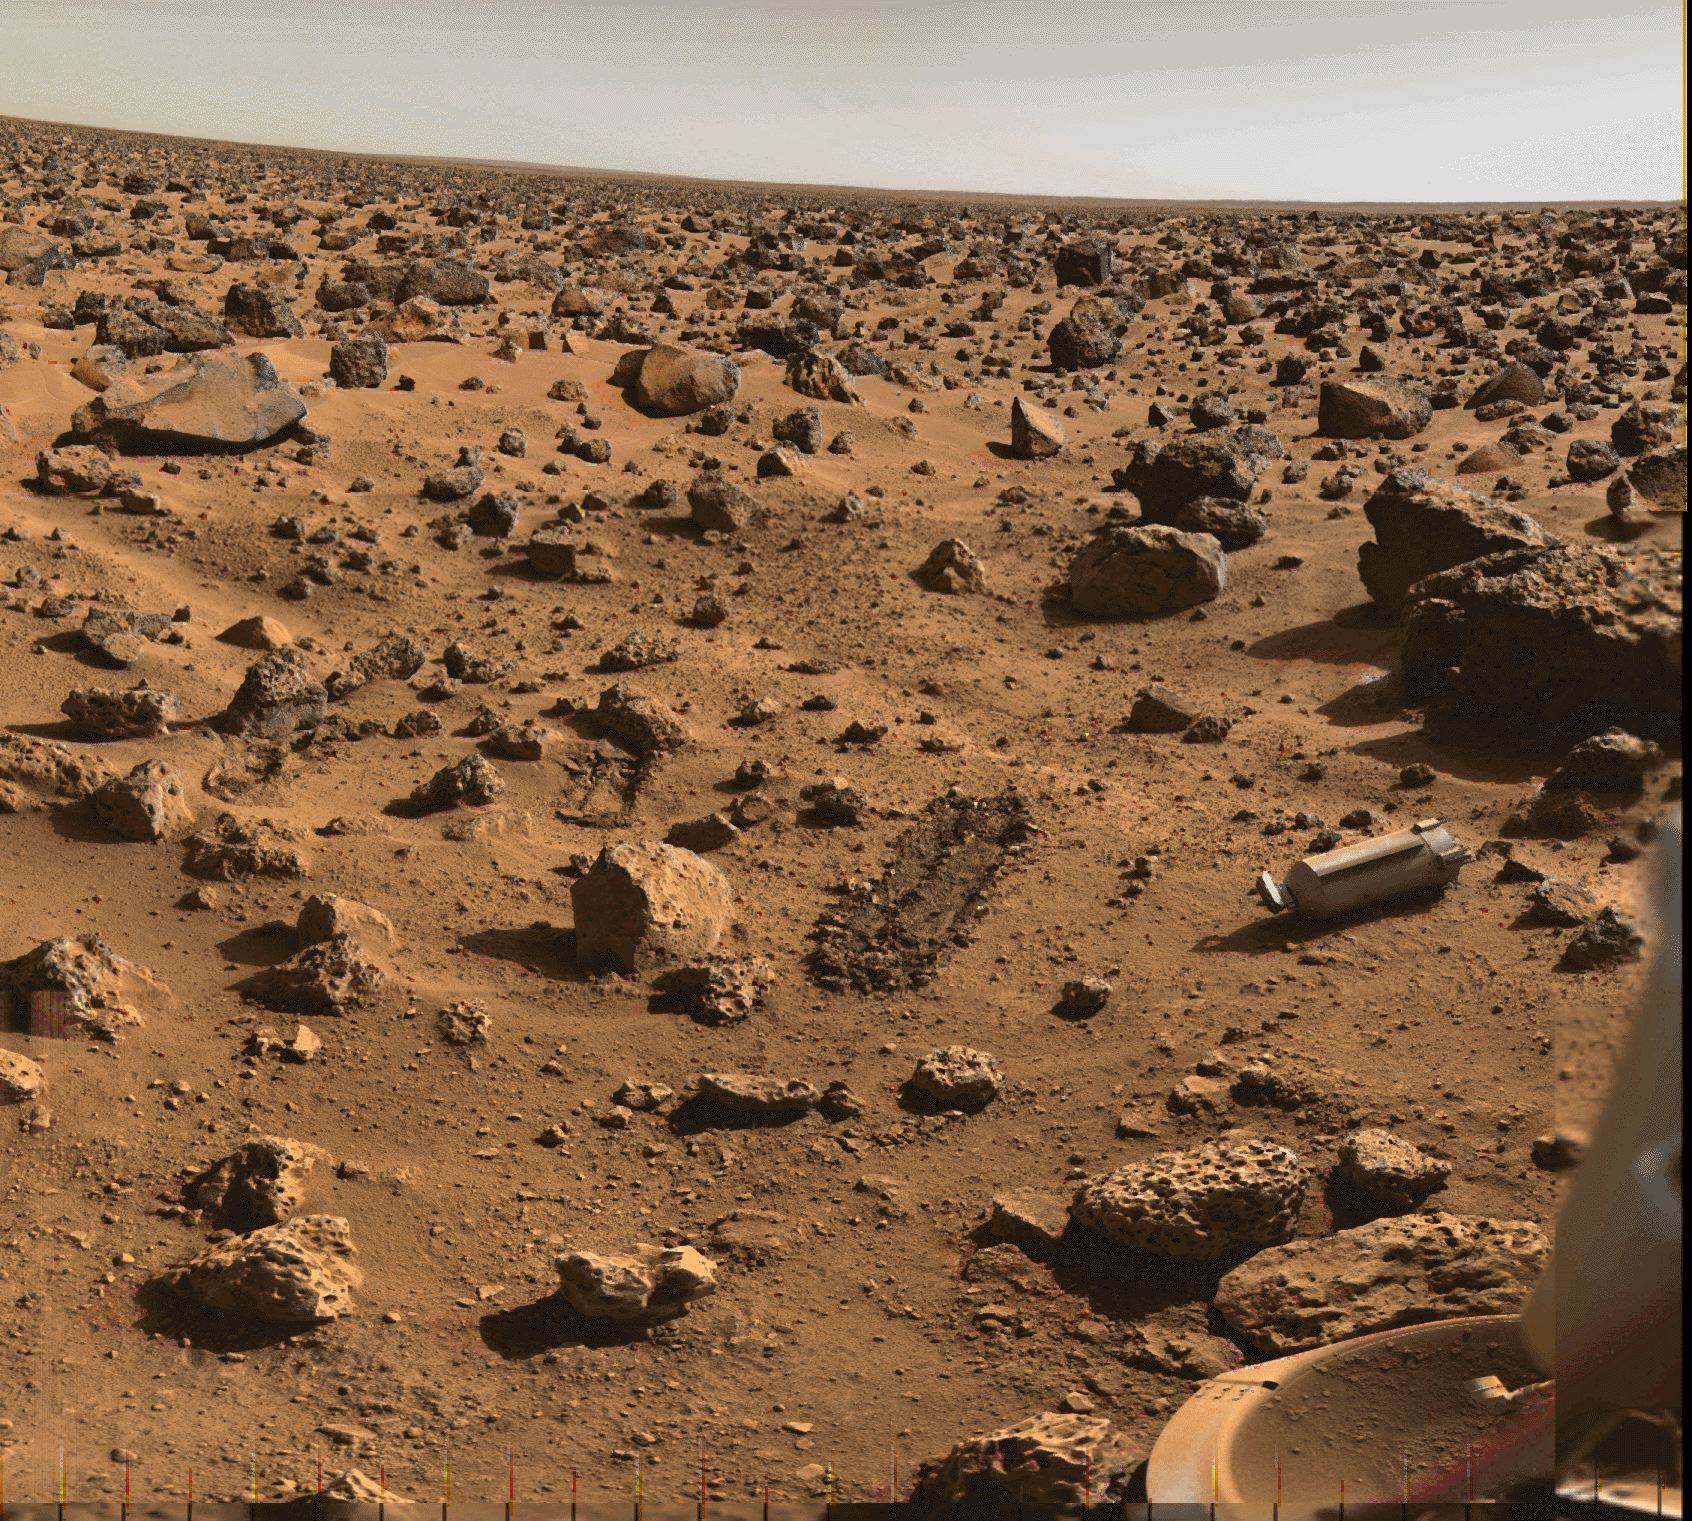 images from mars viking 2 - photo #30